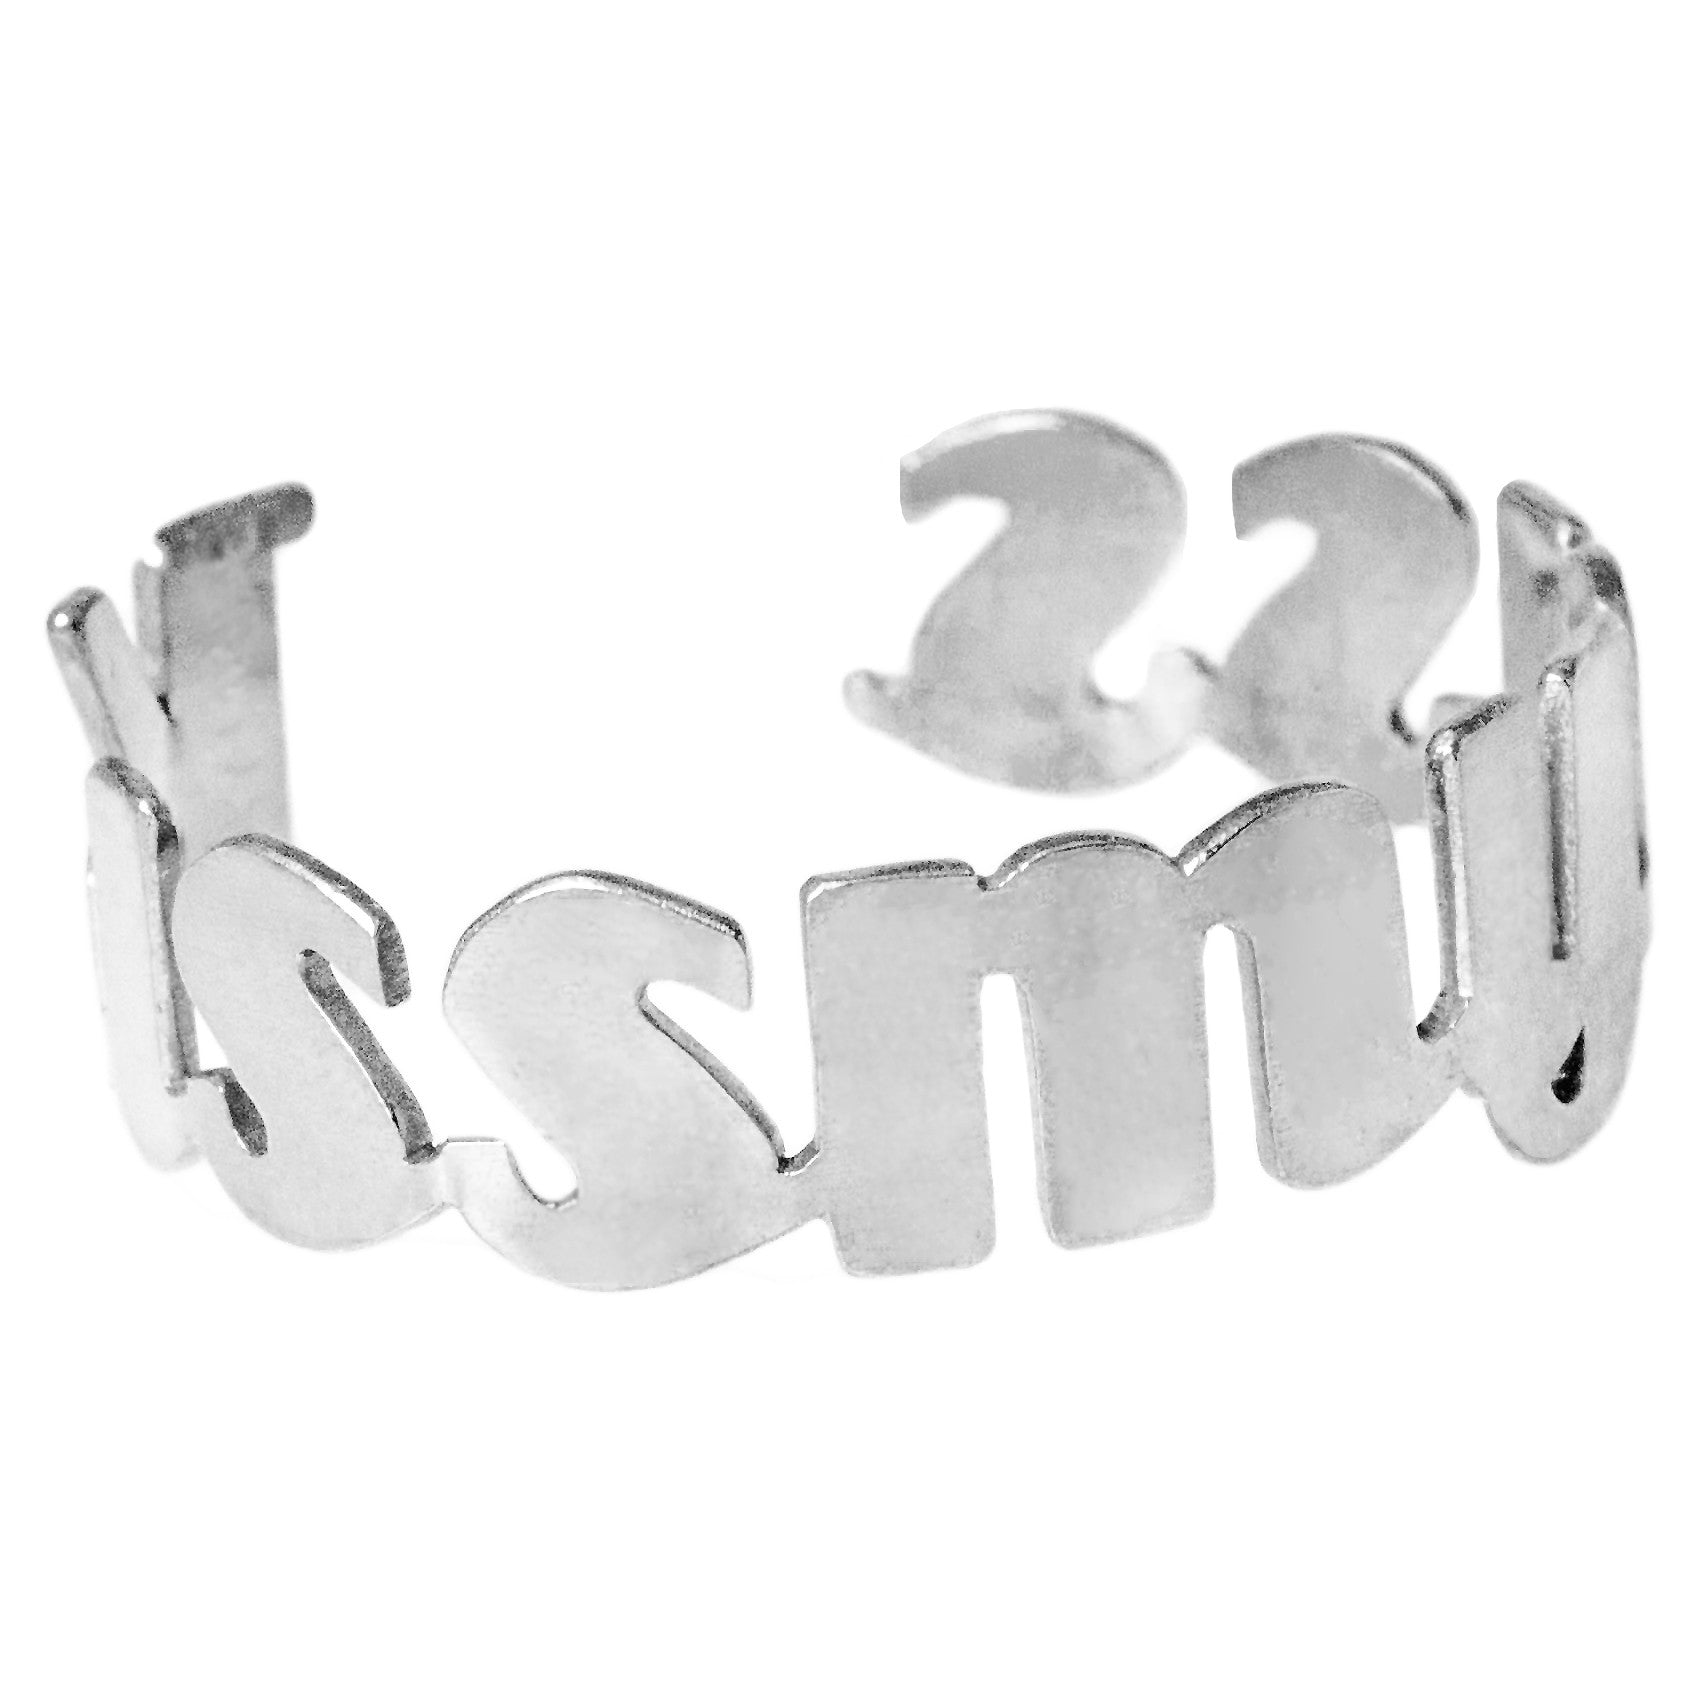 KmyA cuff (stainless steel), - M&D Designs, M&D Designs